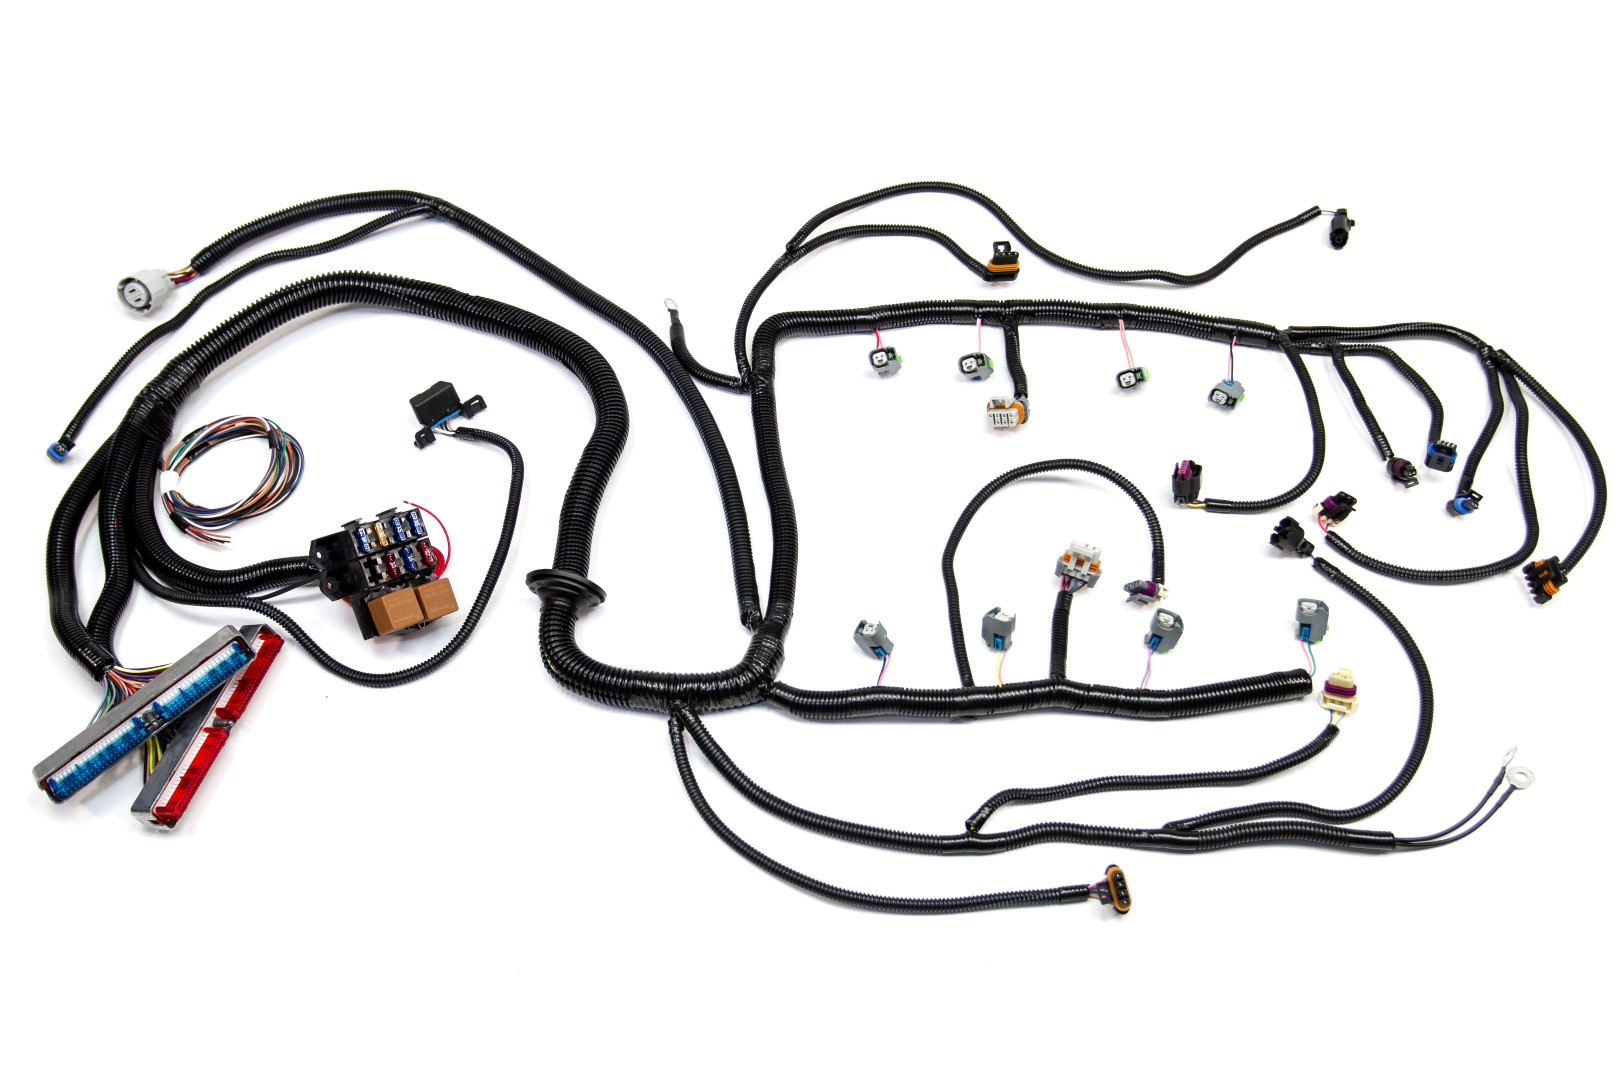 speartech ls1 wiring harness